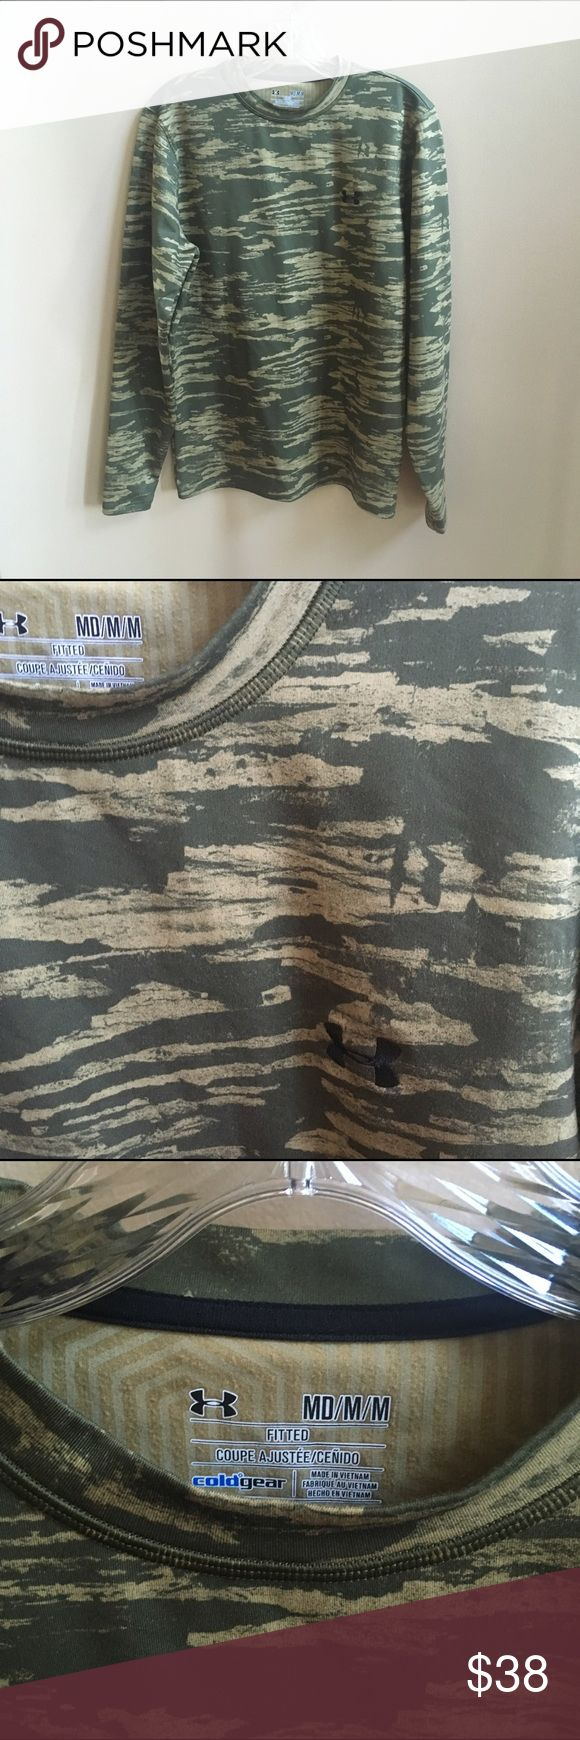 Men's Under Armour Camo Cold Wear Longsleeve Med Men's Under Armour Came Cold Wear Longsleeve Shirt Medium. Crewneck. Worn once. From a non-smoking and pet free home. Under Armour Shirts Sweatshirts & Hoodies